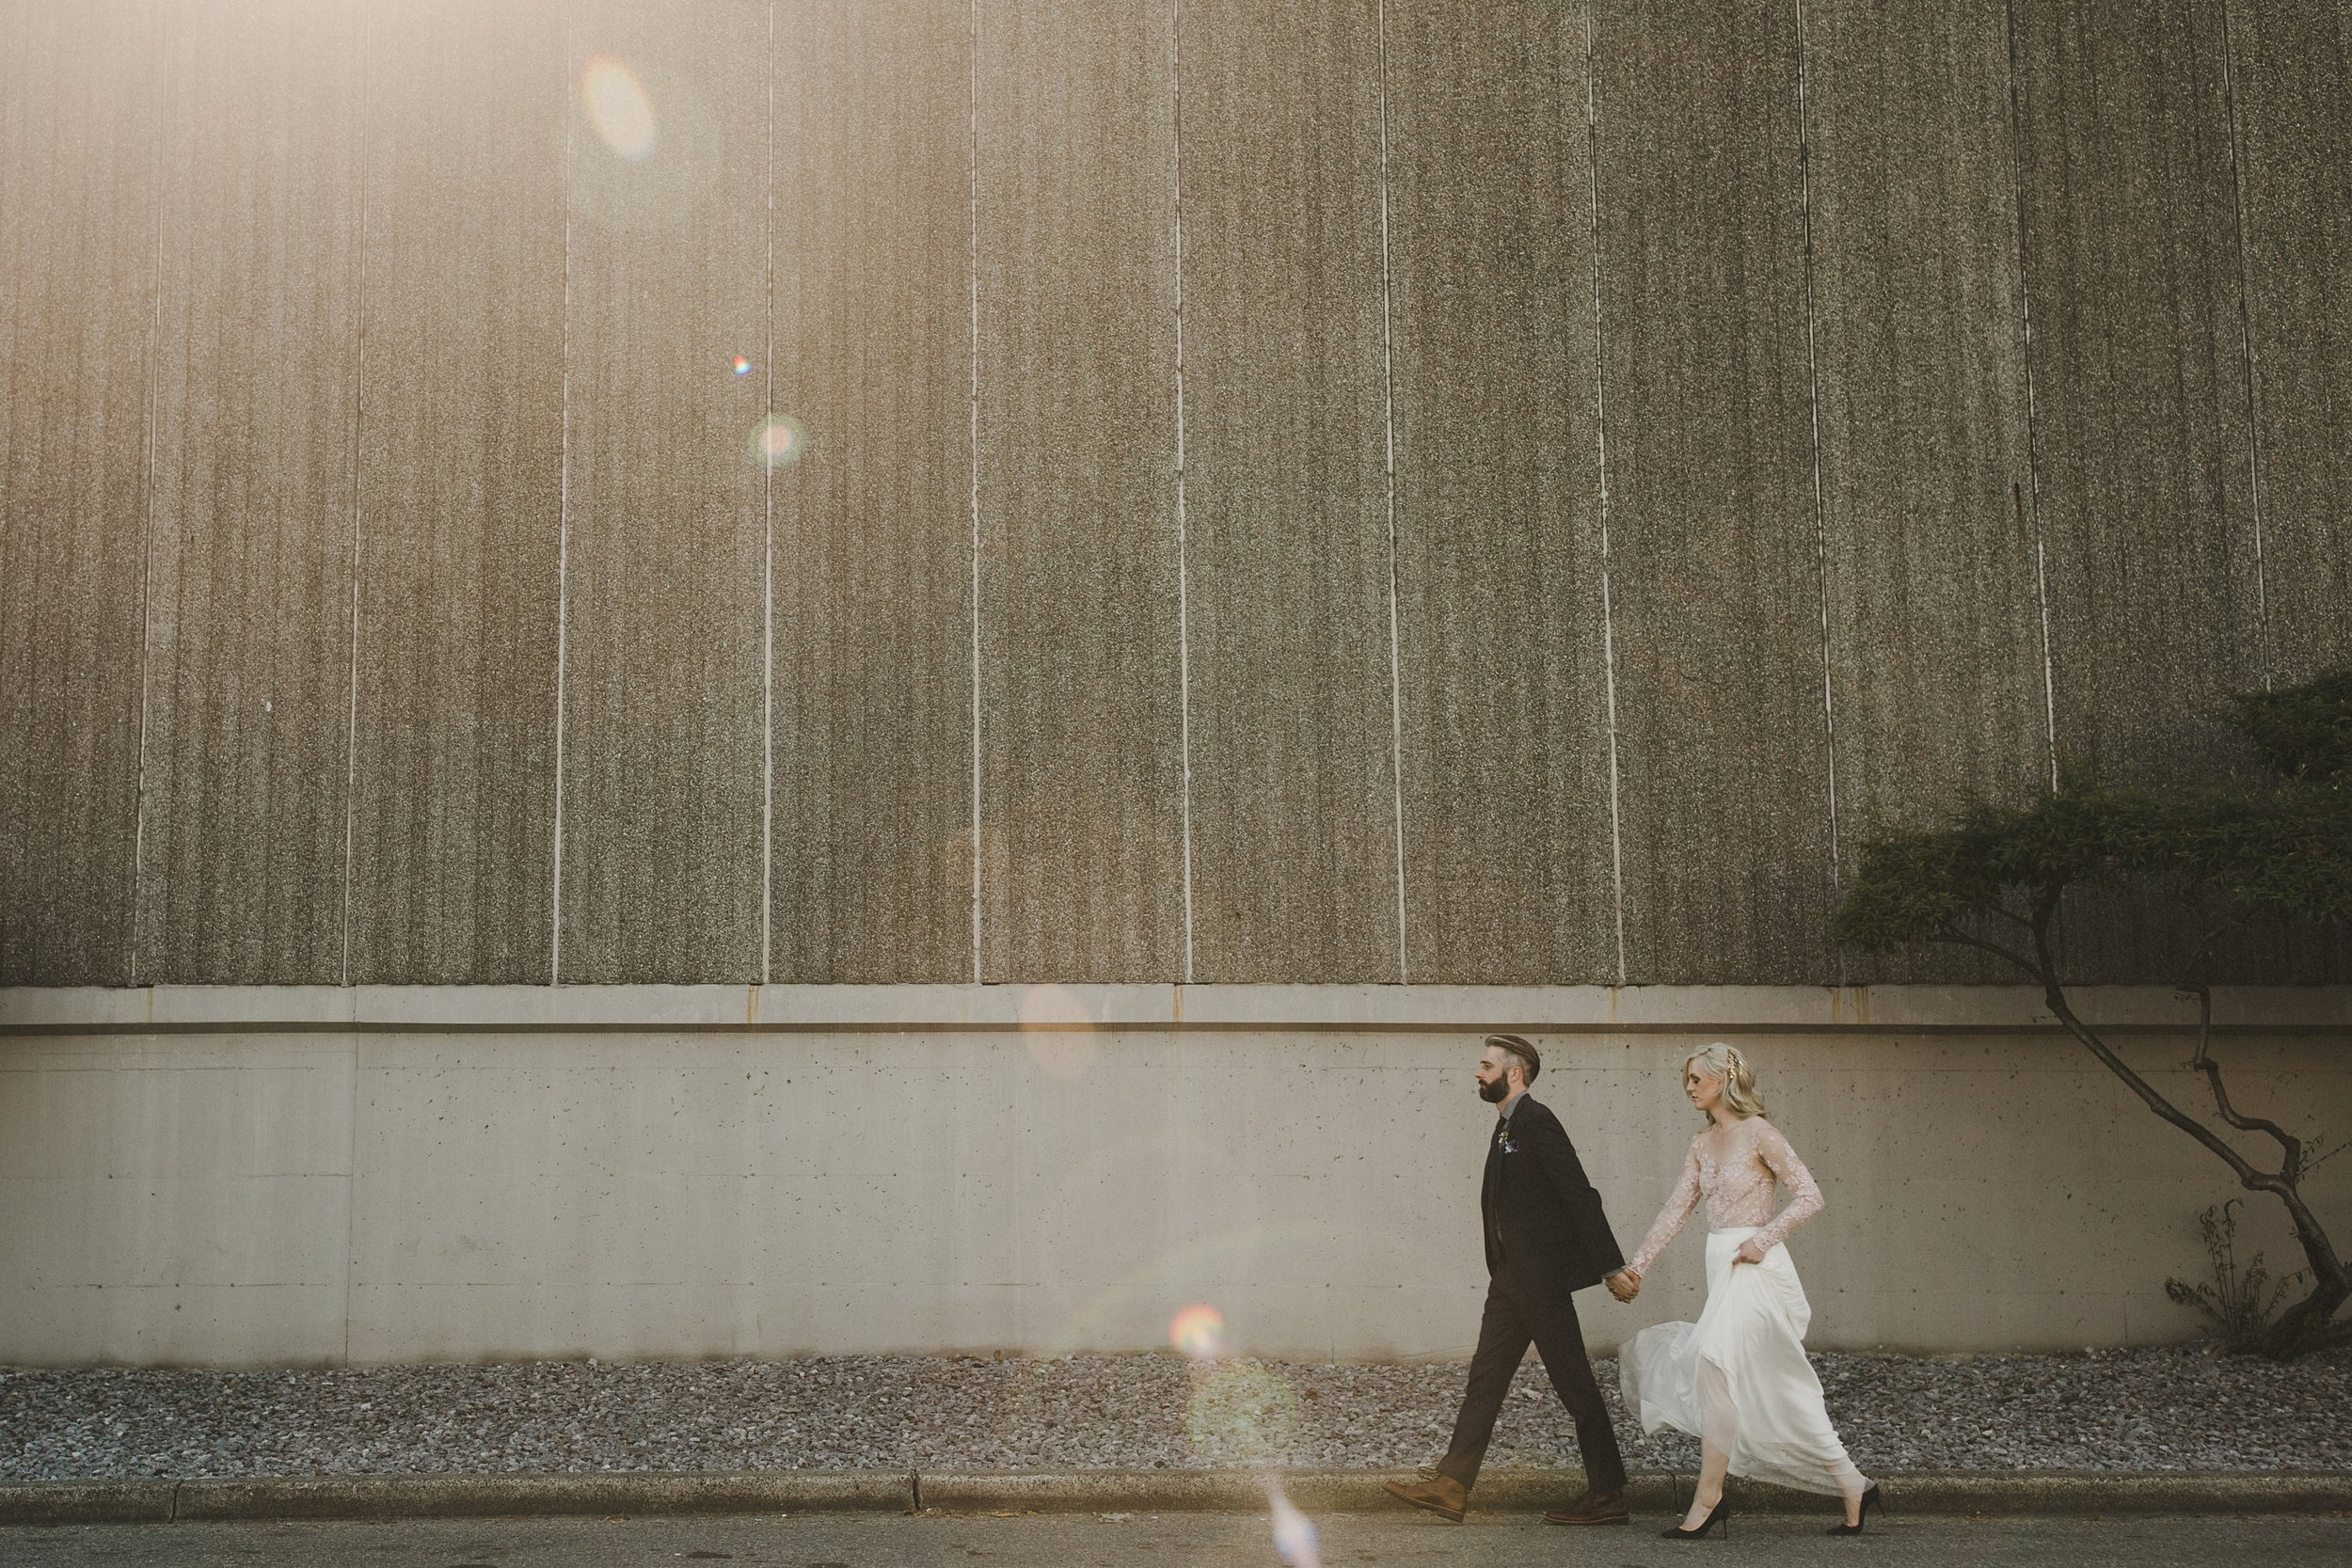 HOWE ABOUT FOREVA - Vancouver urban woodshop wedding by Shari + Mike photographers - bride and groom